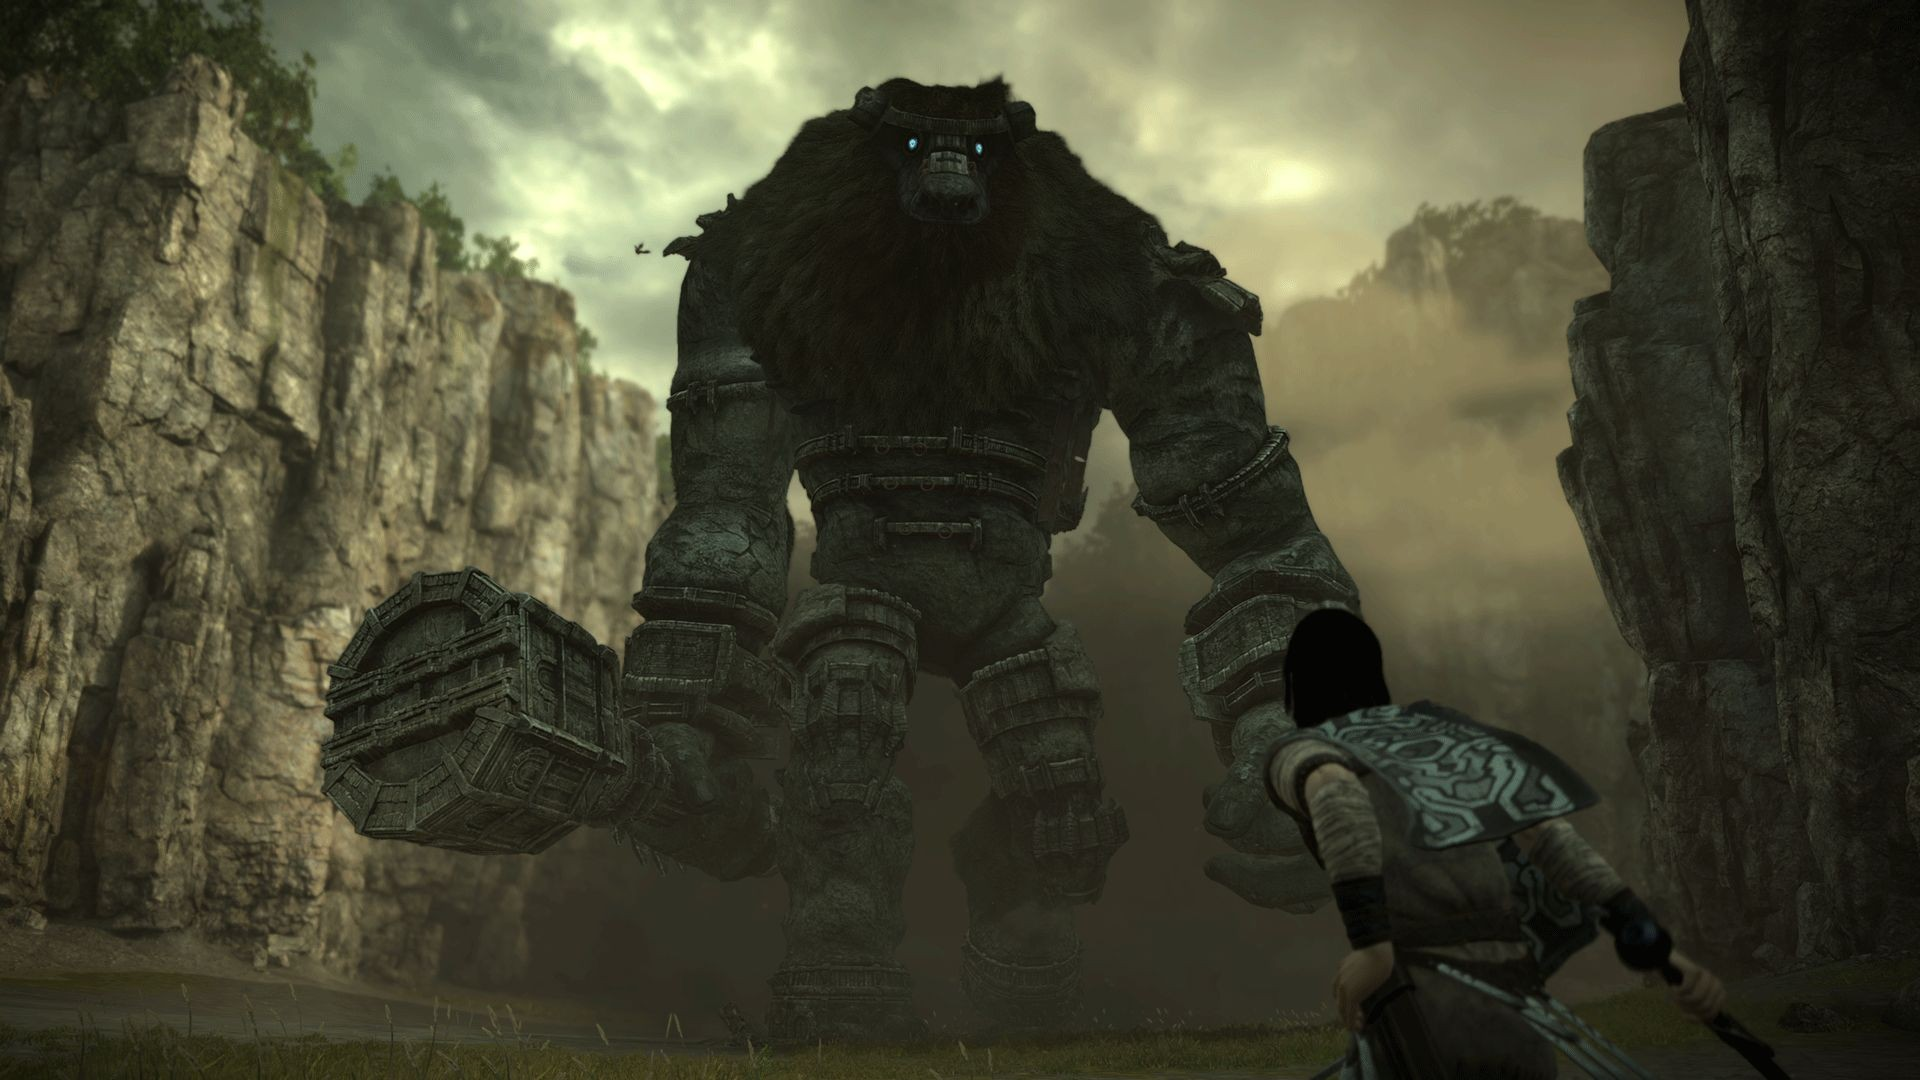 shadow-of-the-colossus-playstation-4